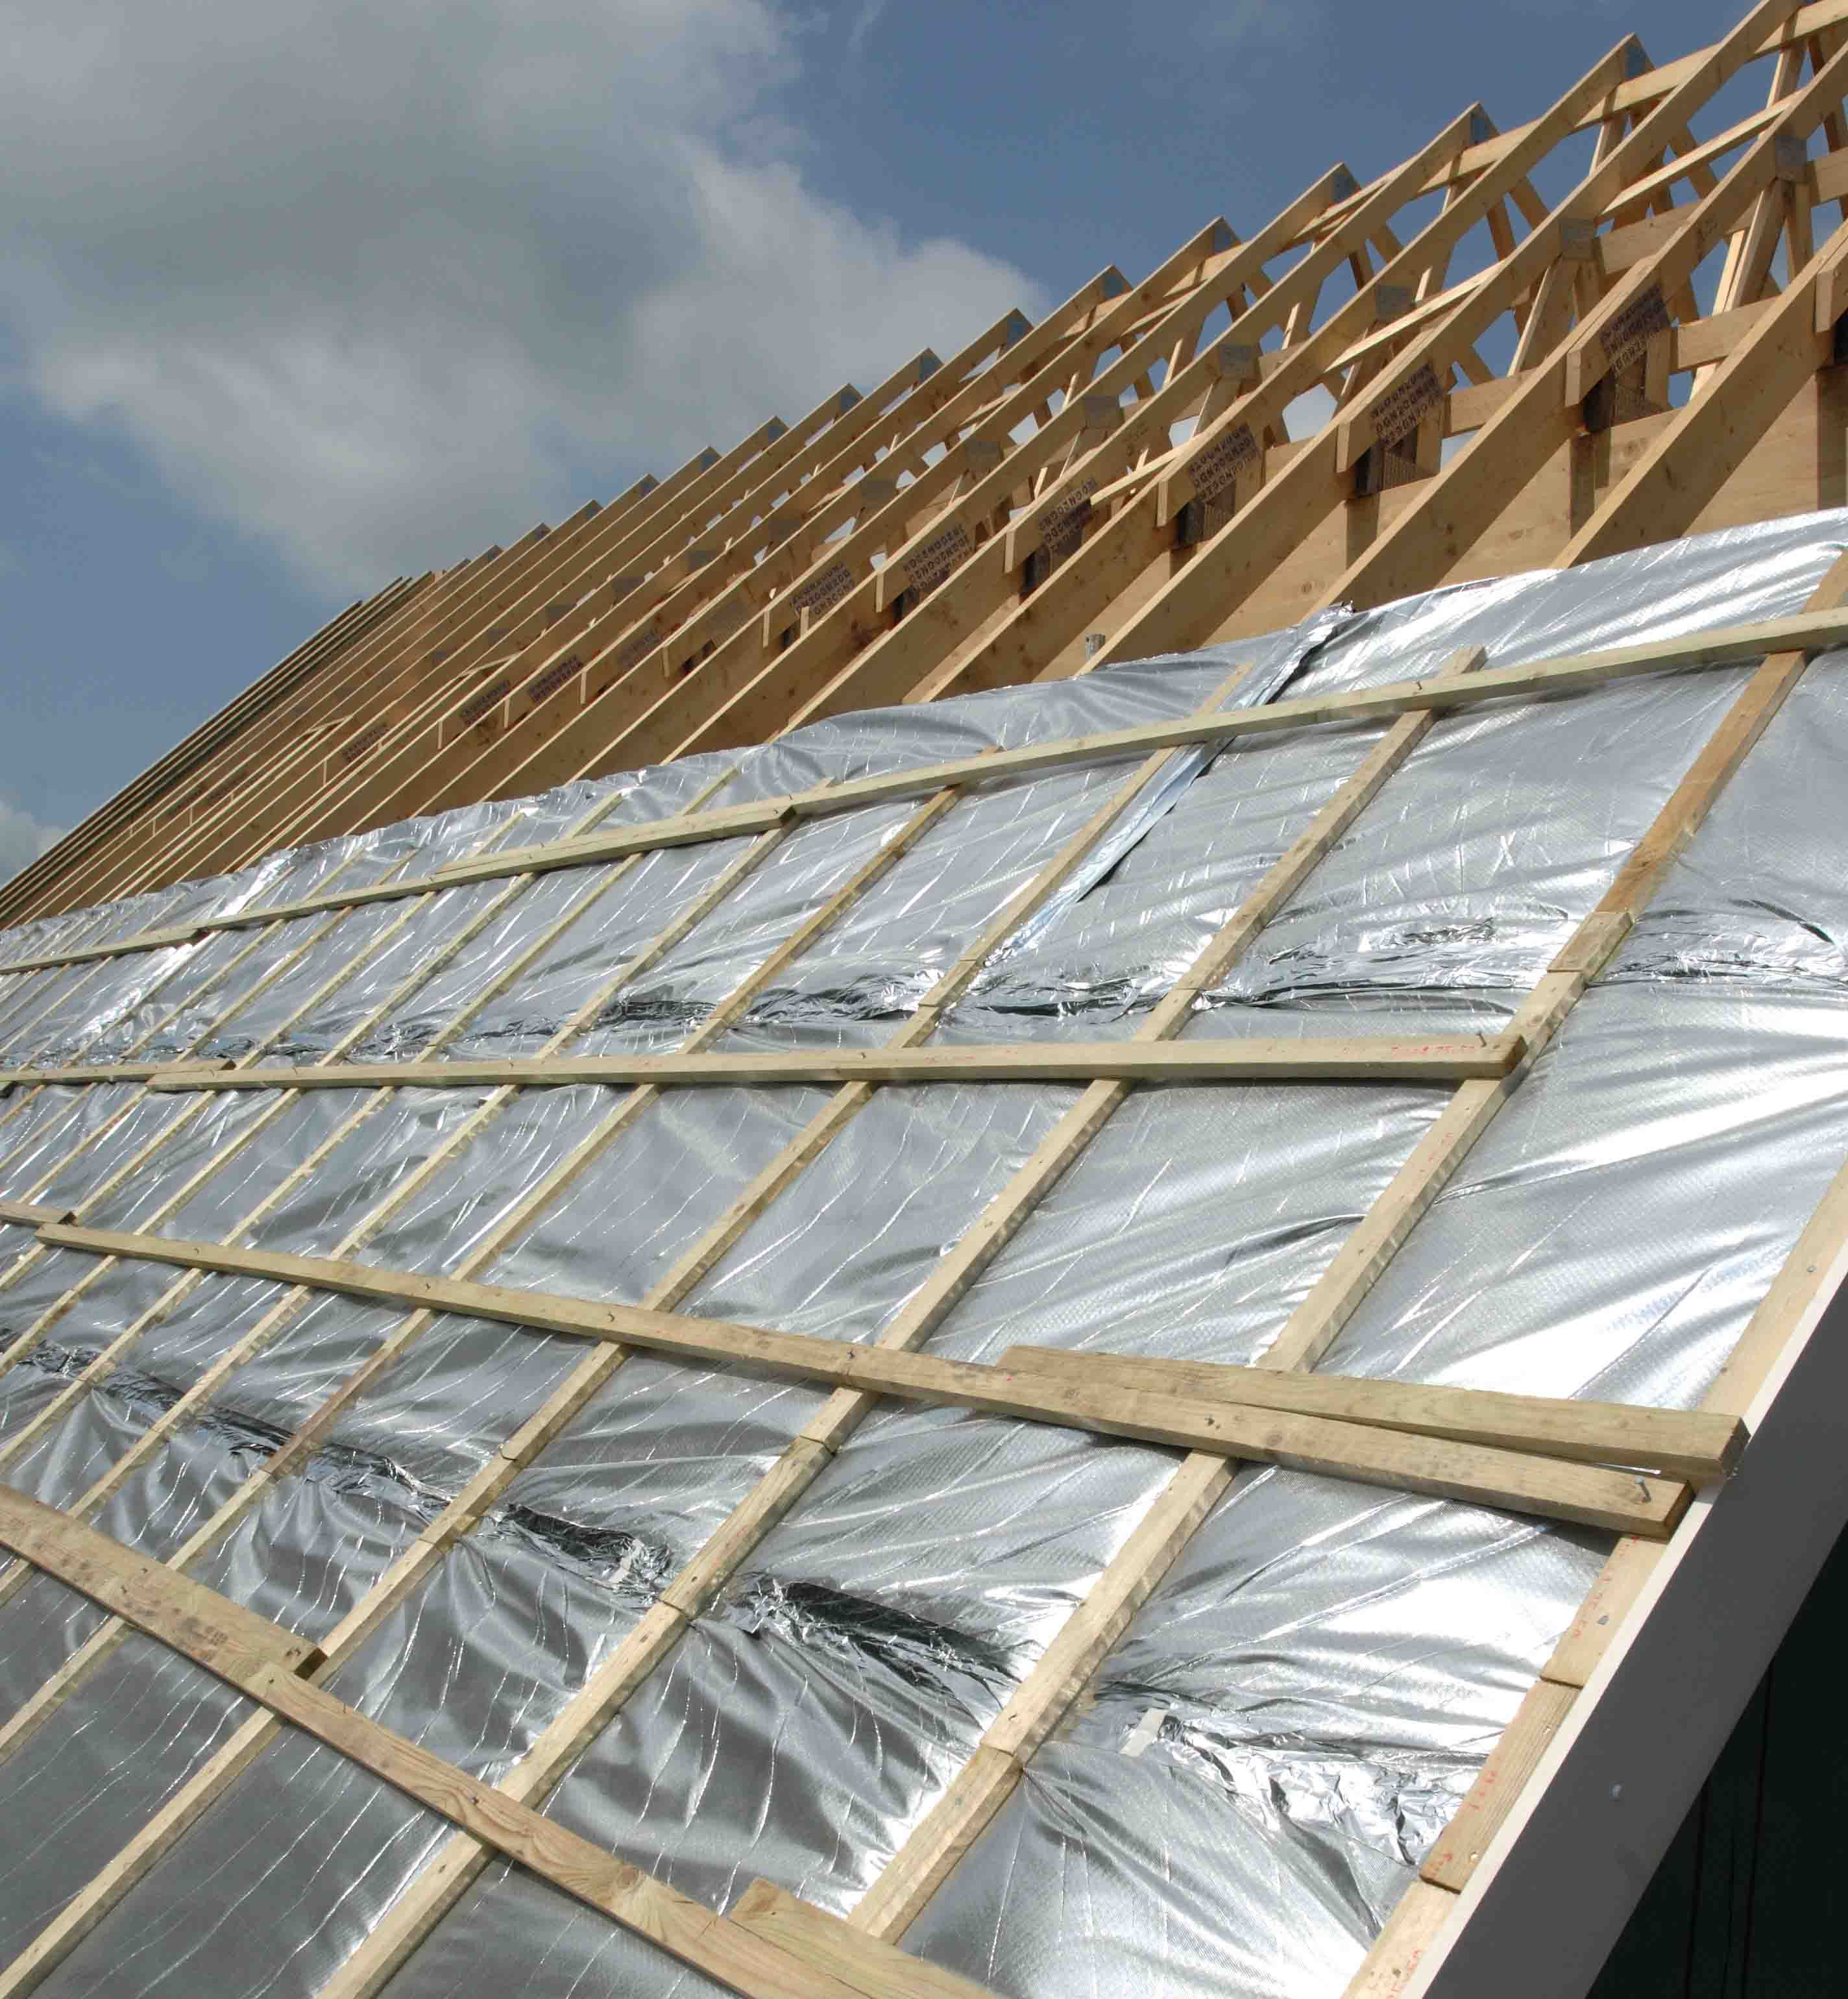 Re Roofing Is Faster And Less Expensive Than A Complete Roof Replacement There S Also Less Labor And Material Involved So Yo Roof Insulation Roof Repair Roof